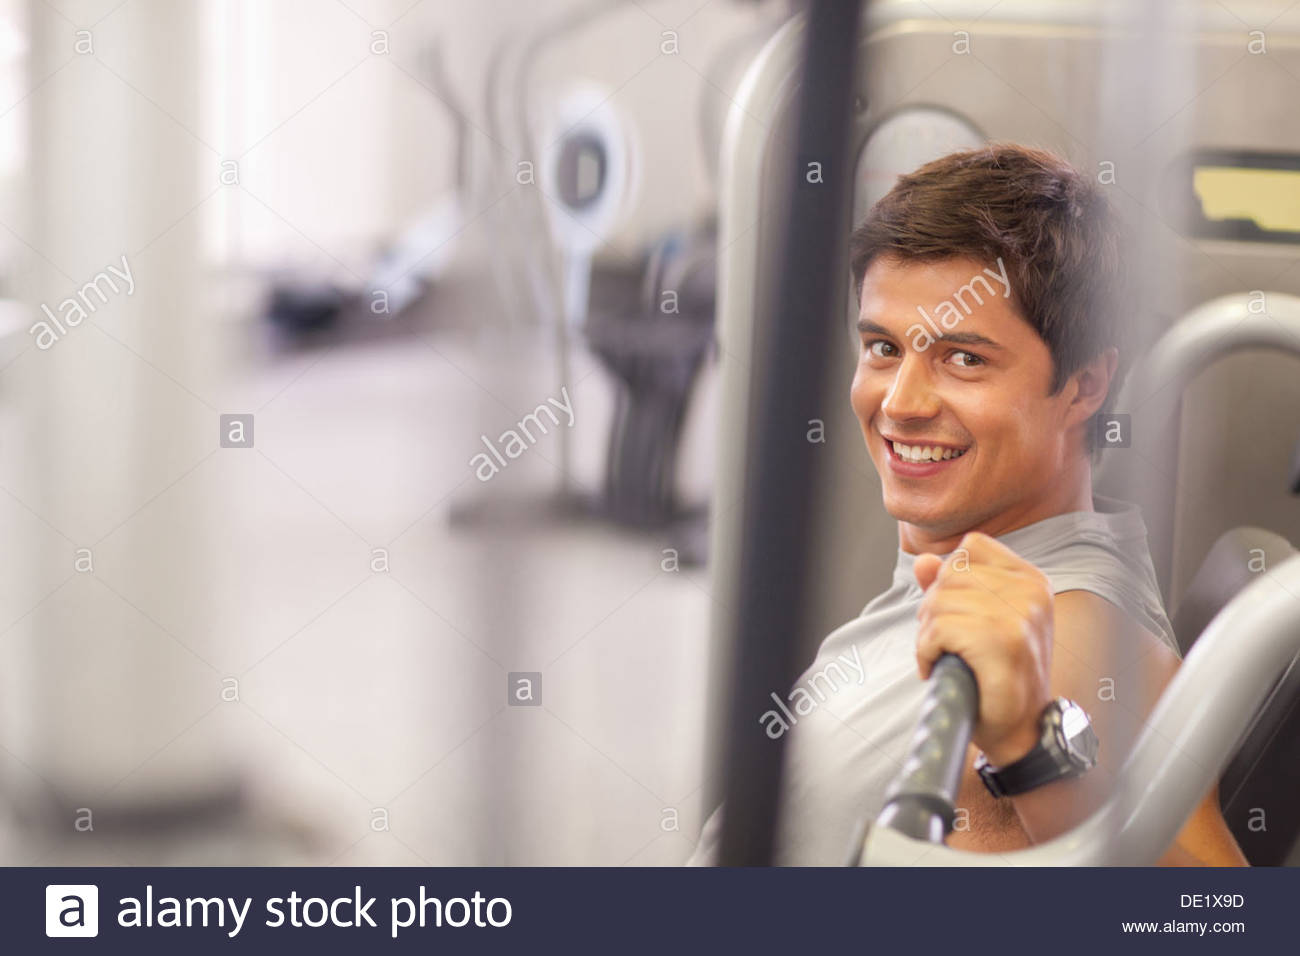 Man working out in gym Photo Stock